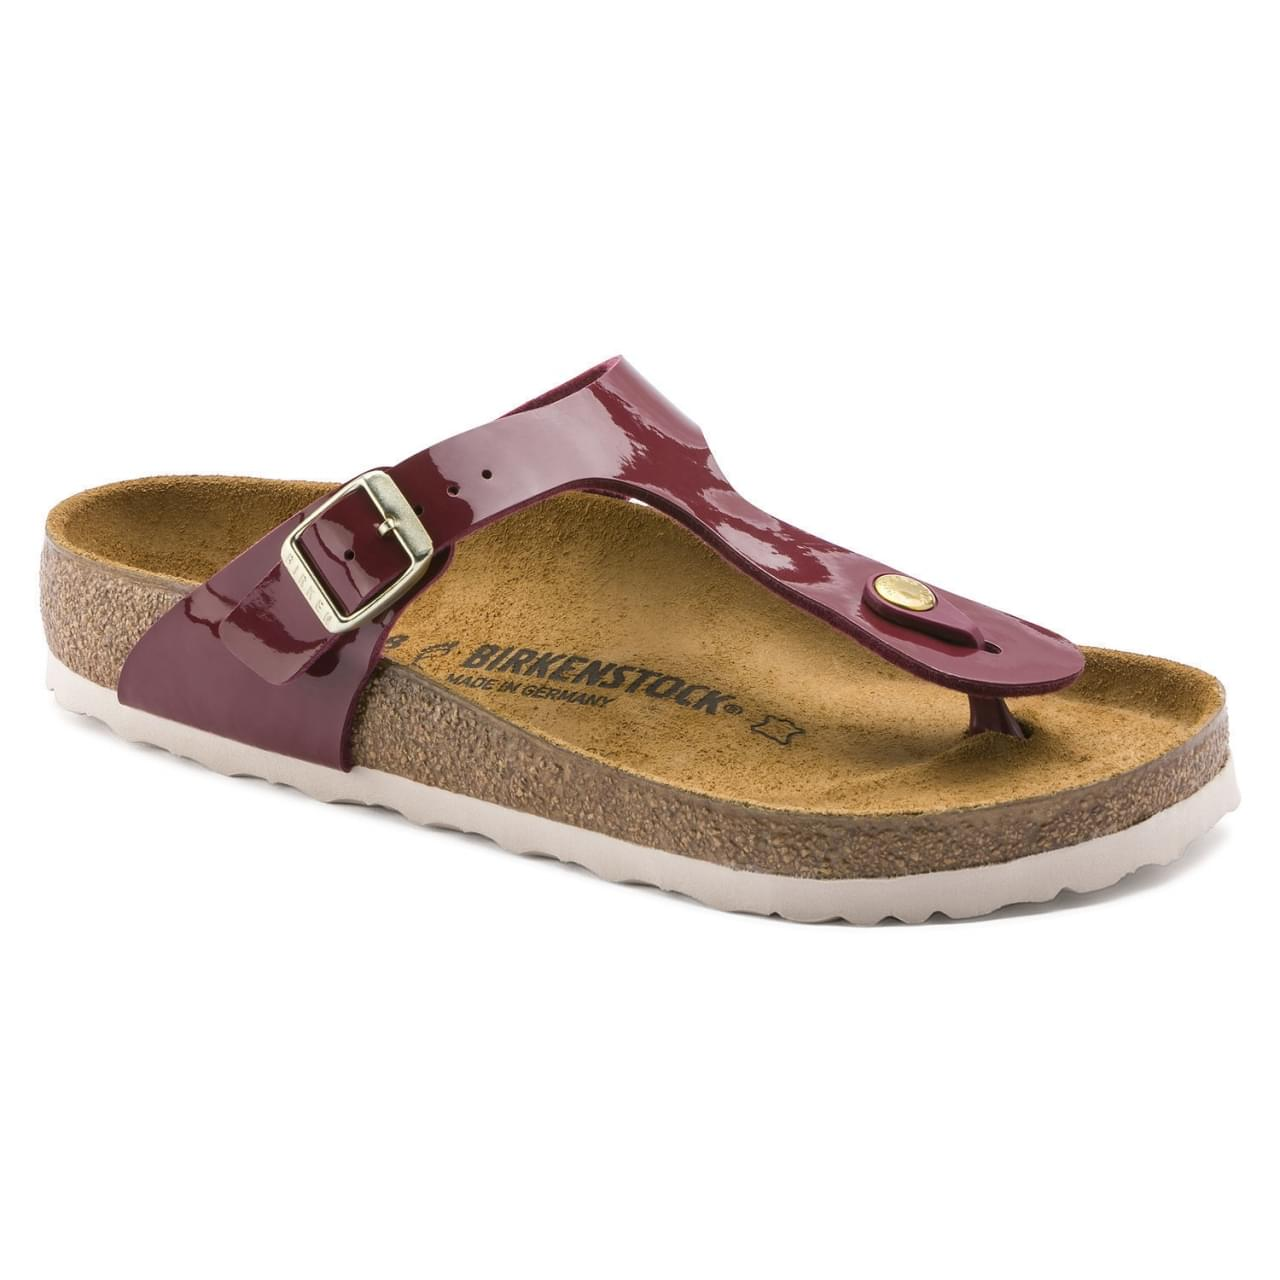 Birkenstock Gizeh Regular Slipper Dames